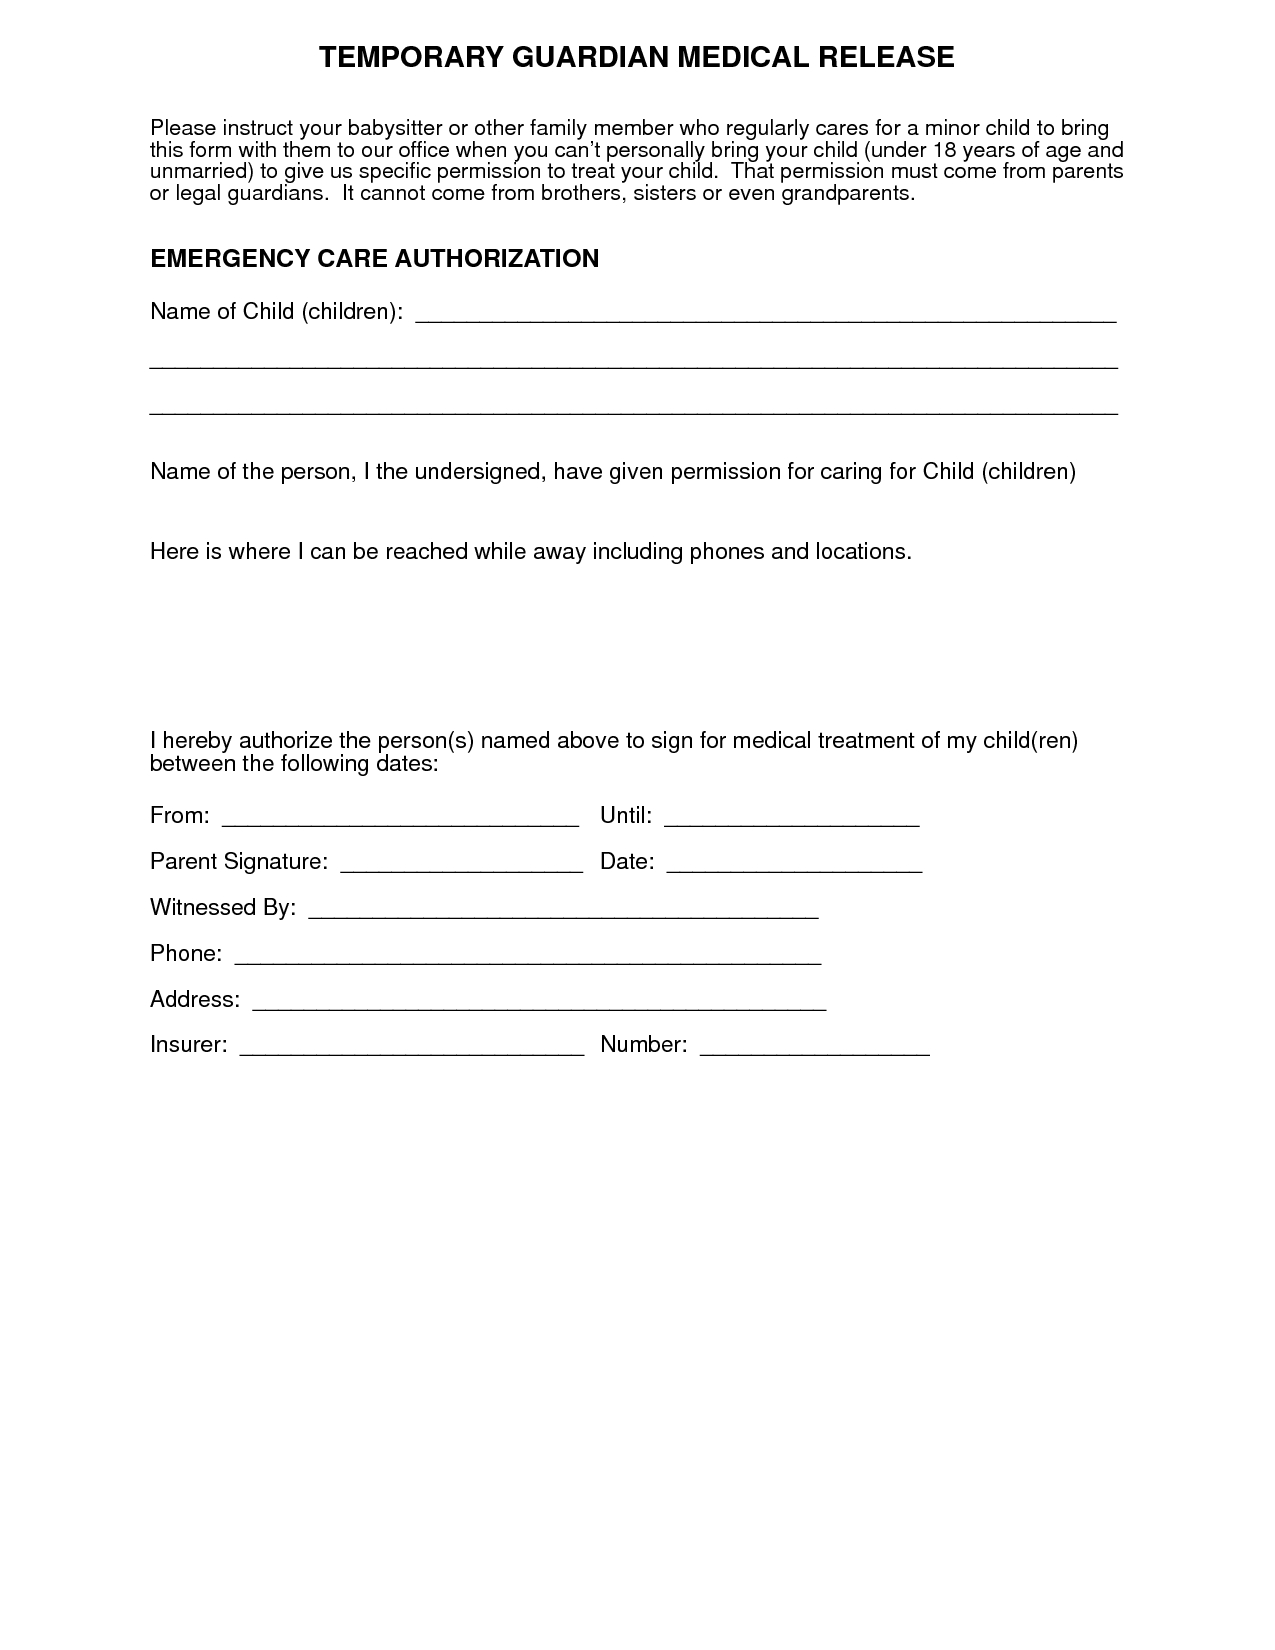 Medical+Authorization+Form+For+Grandparents   For More Medical - Free Printable Medical Forms Kit